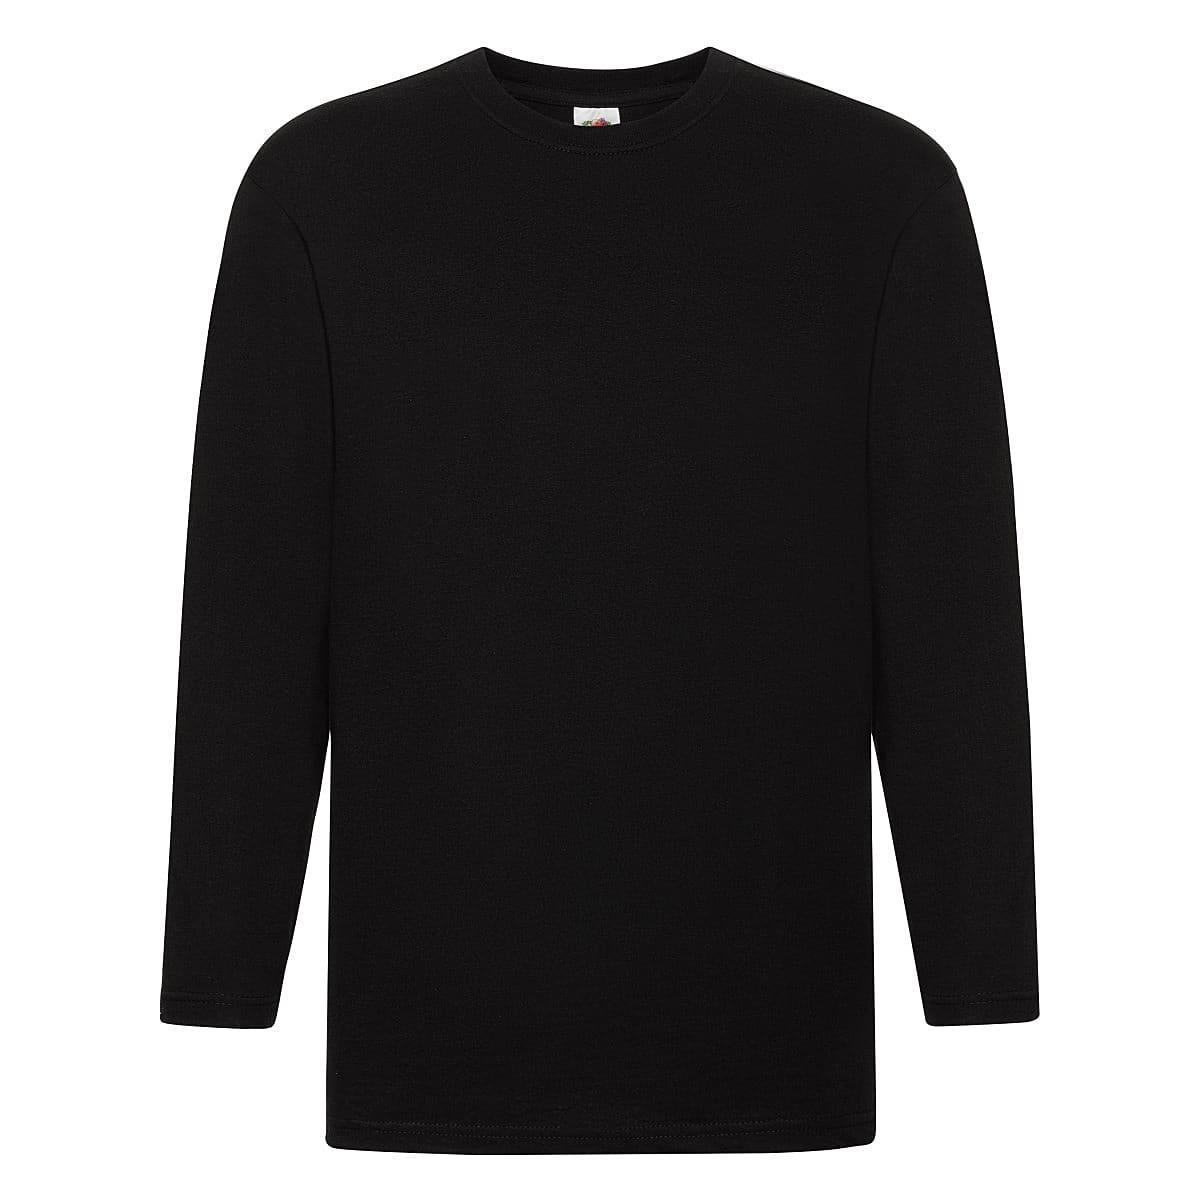 Fruit Of The Loom Super Premium Long-Sleeve T-Shirt in Black (Product Code: 61042)